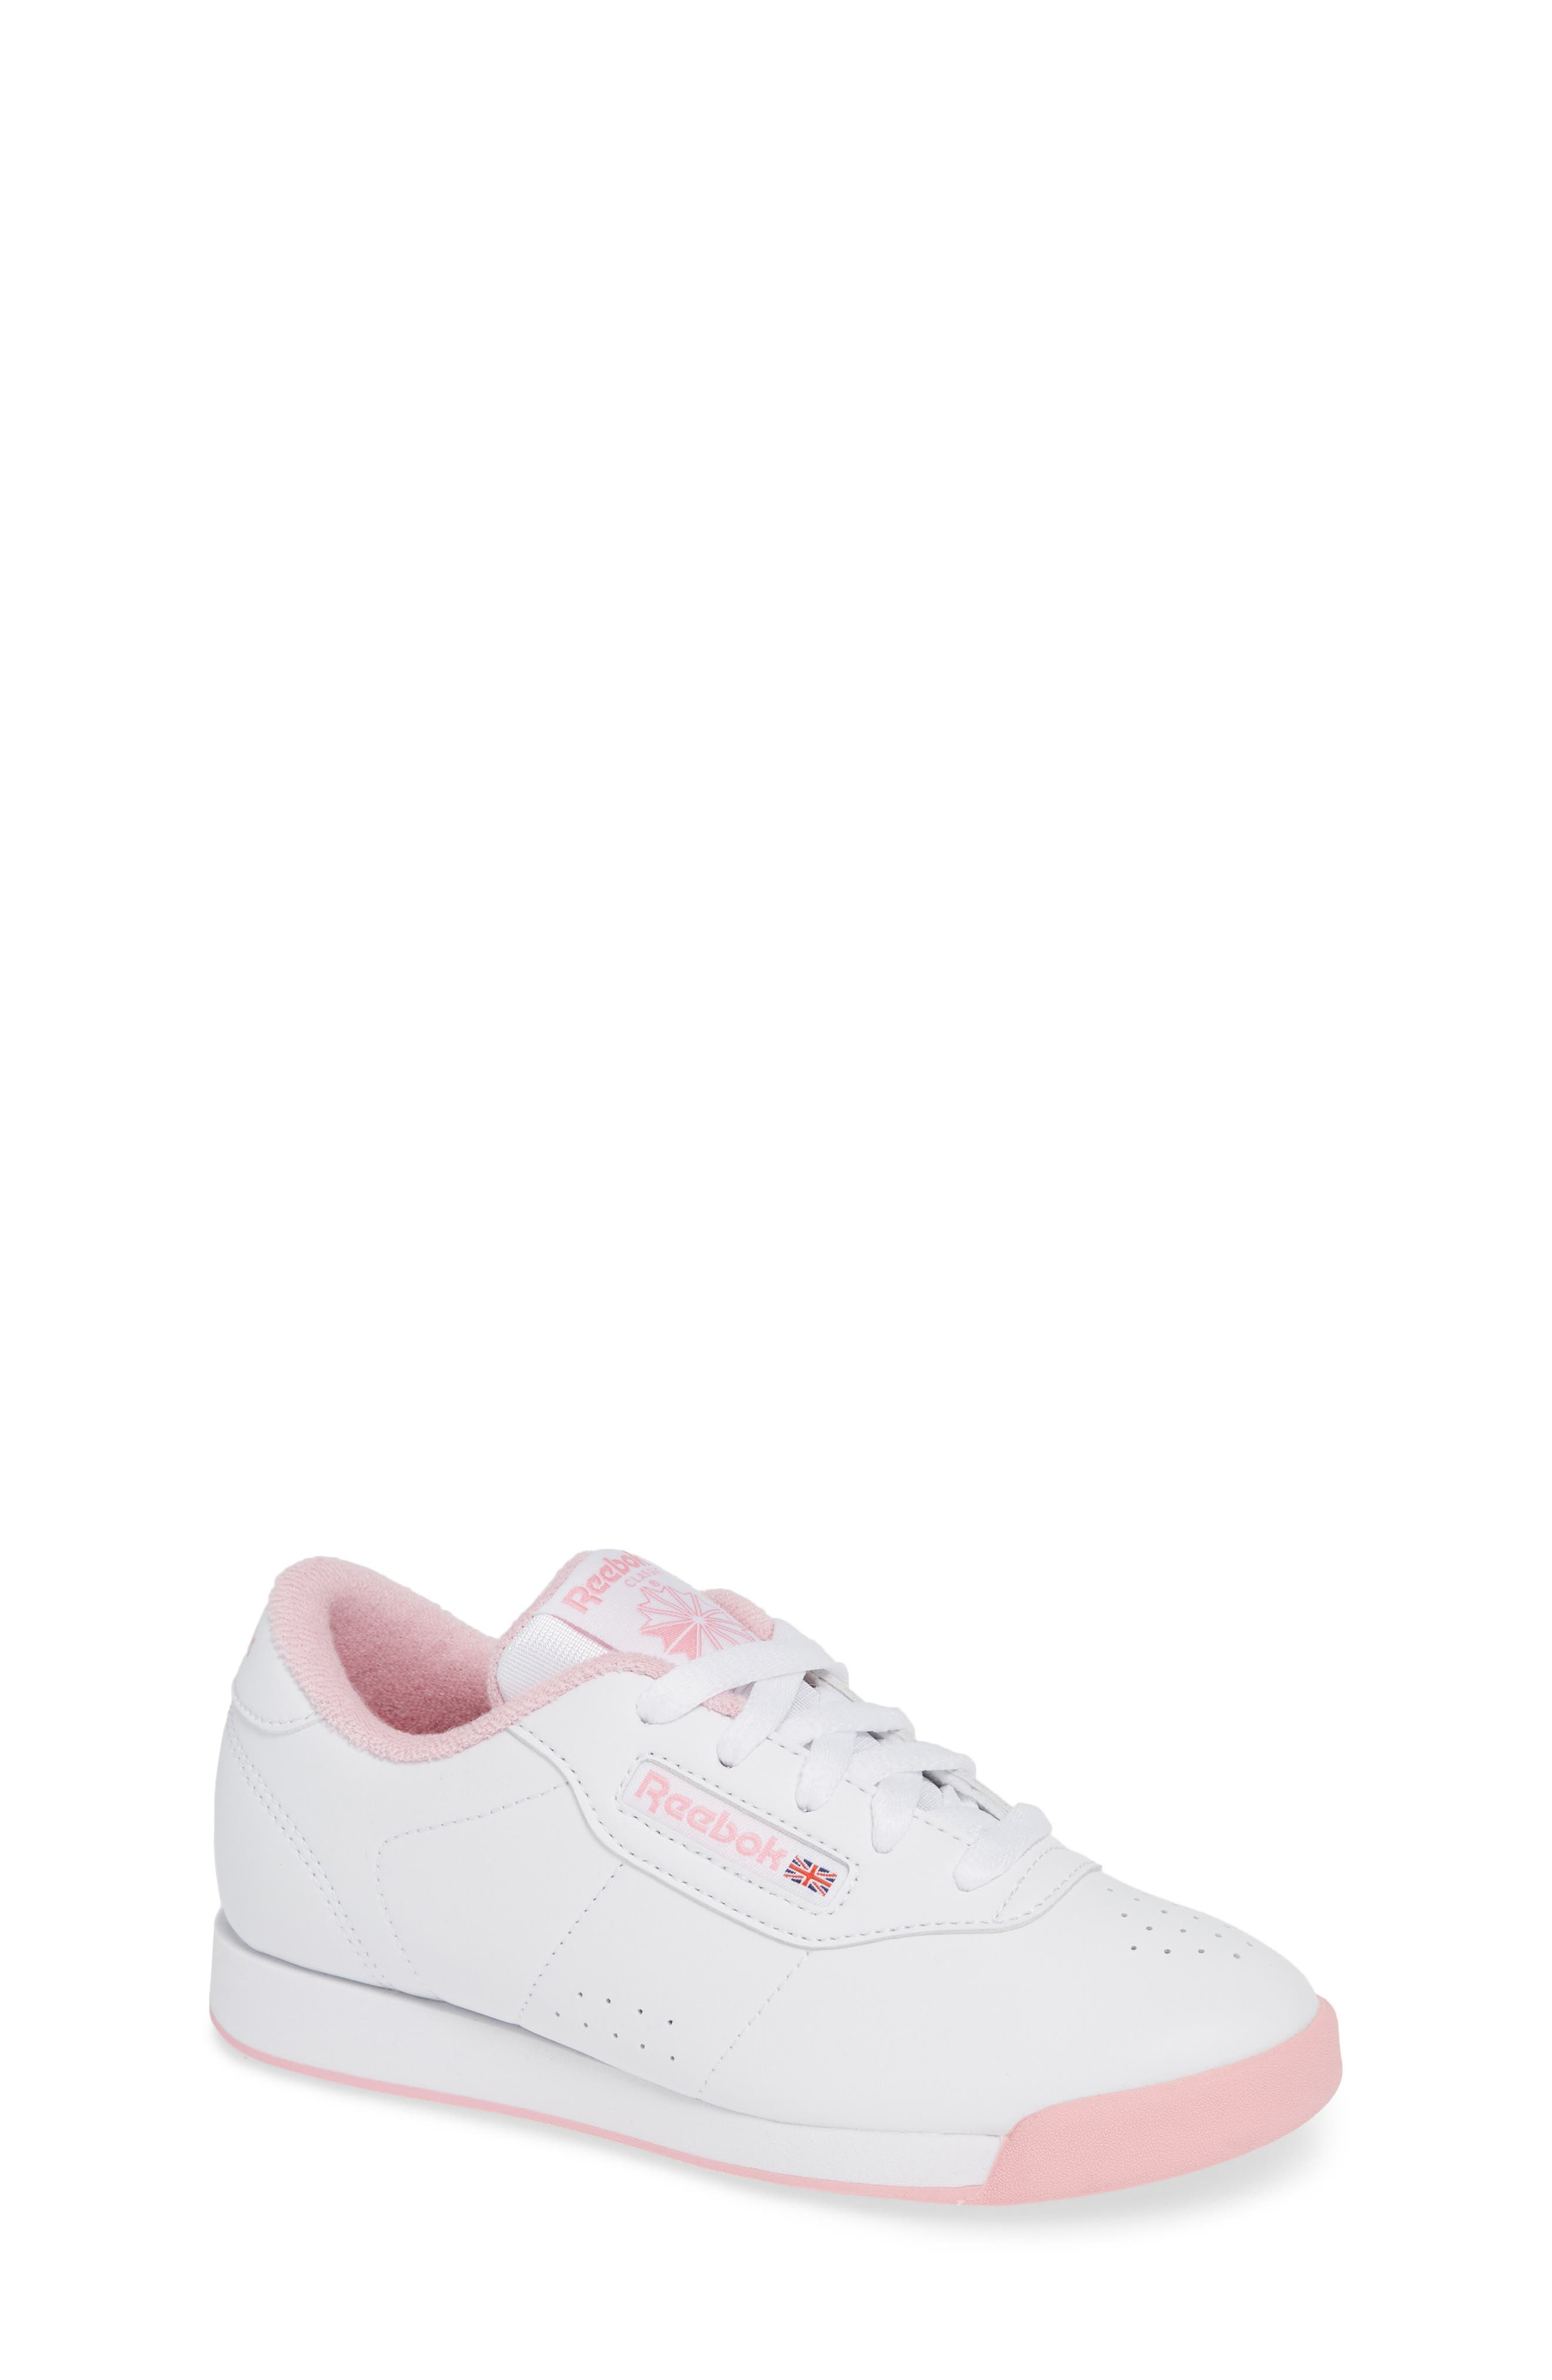 Princess Sneaker,                         Main,                         color, WHITE/ LIGHT PINK